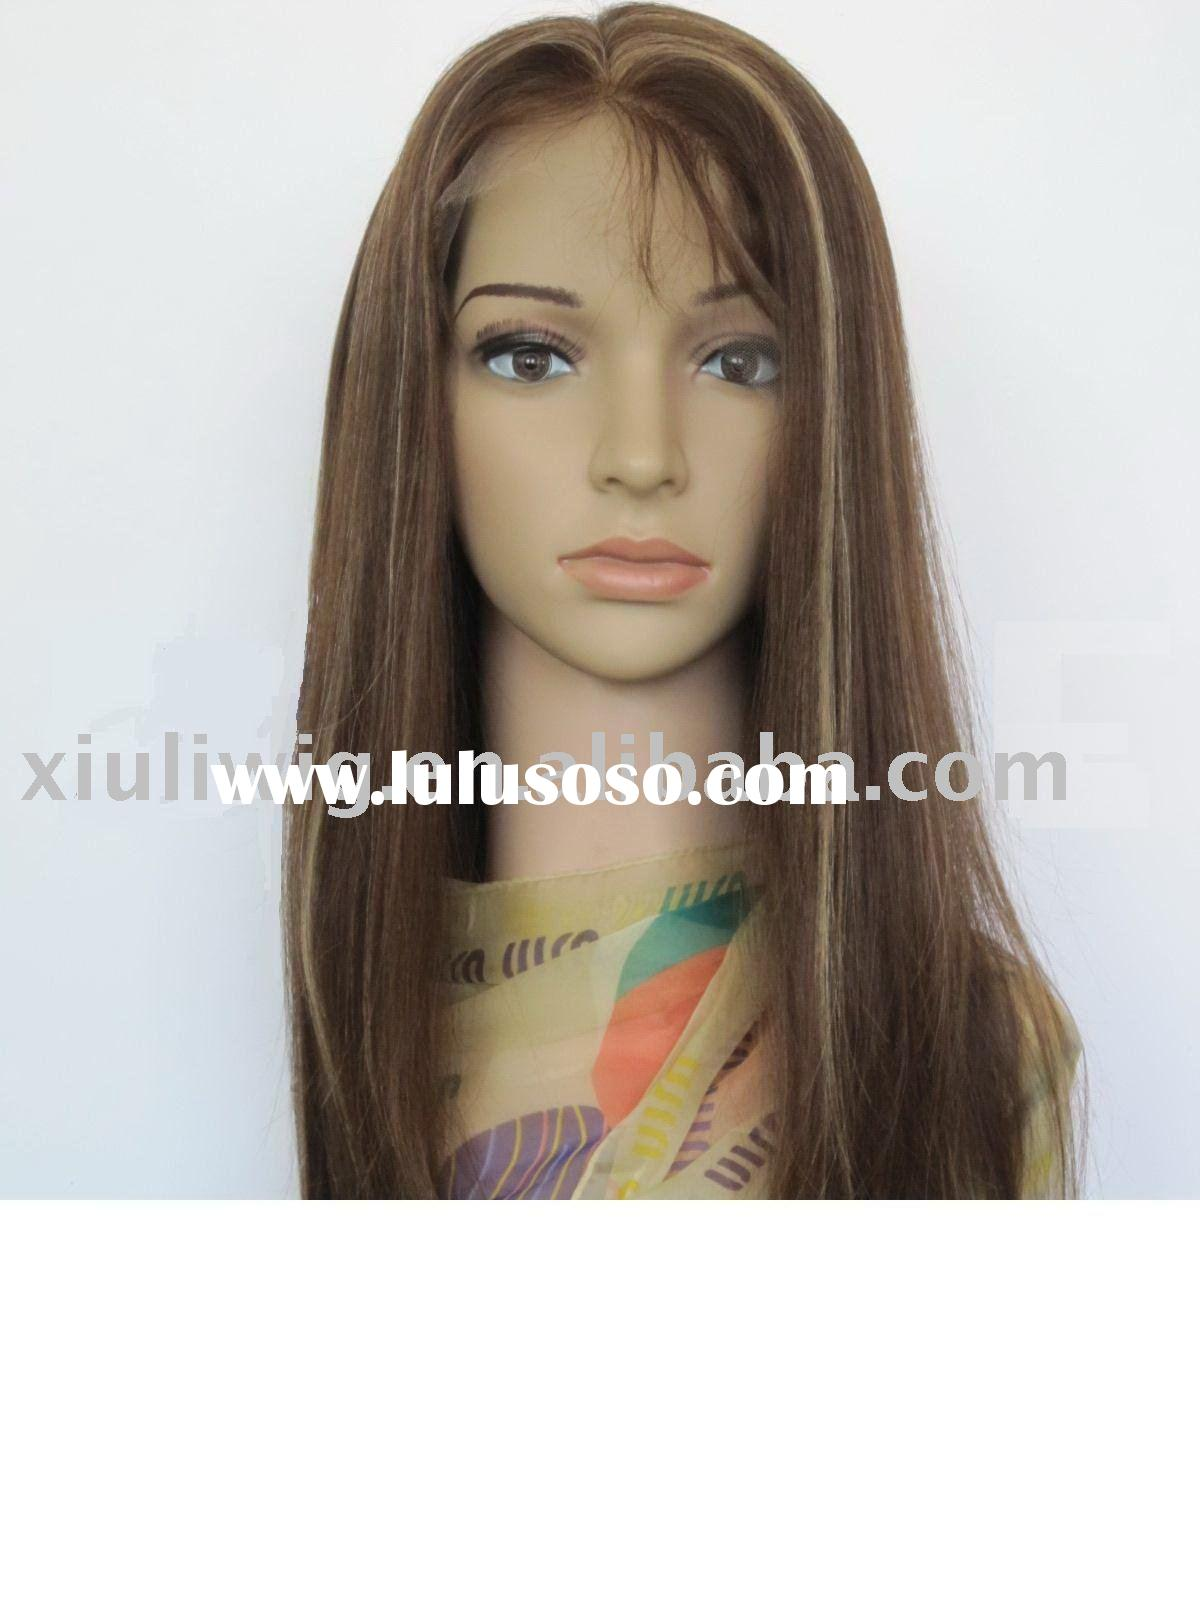 100% Human Hair 18 inch 4# highlights 27# straight Full Lace Wigs